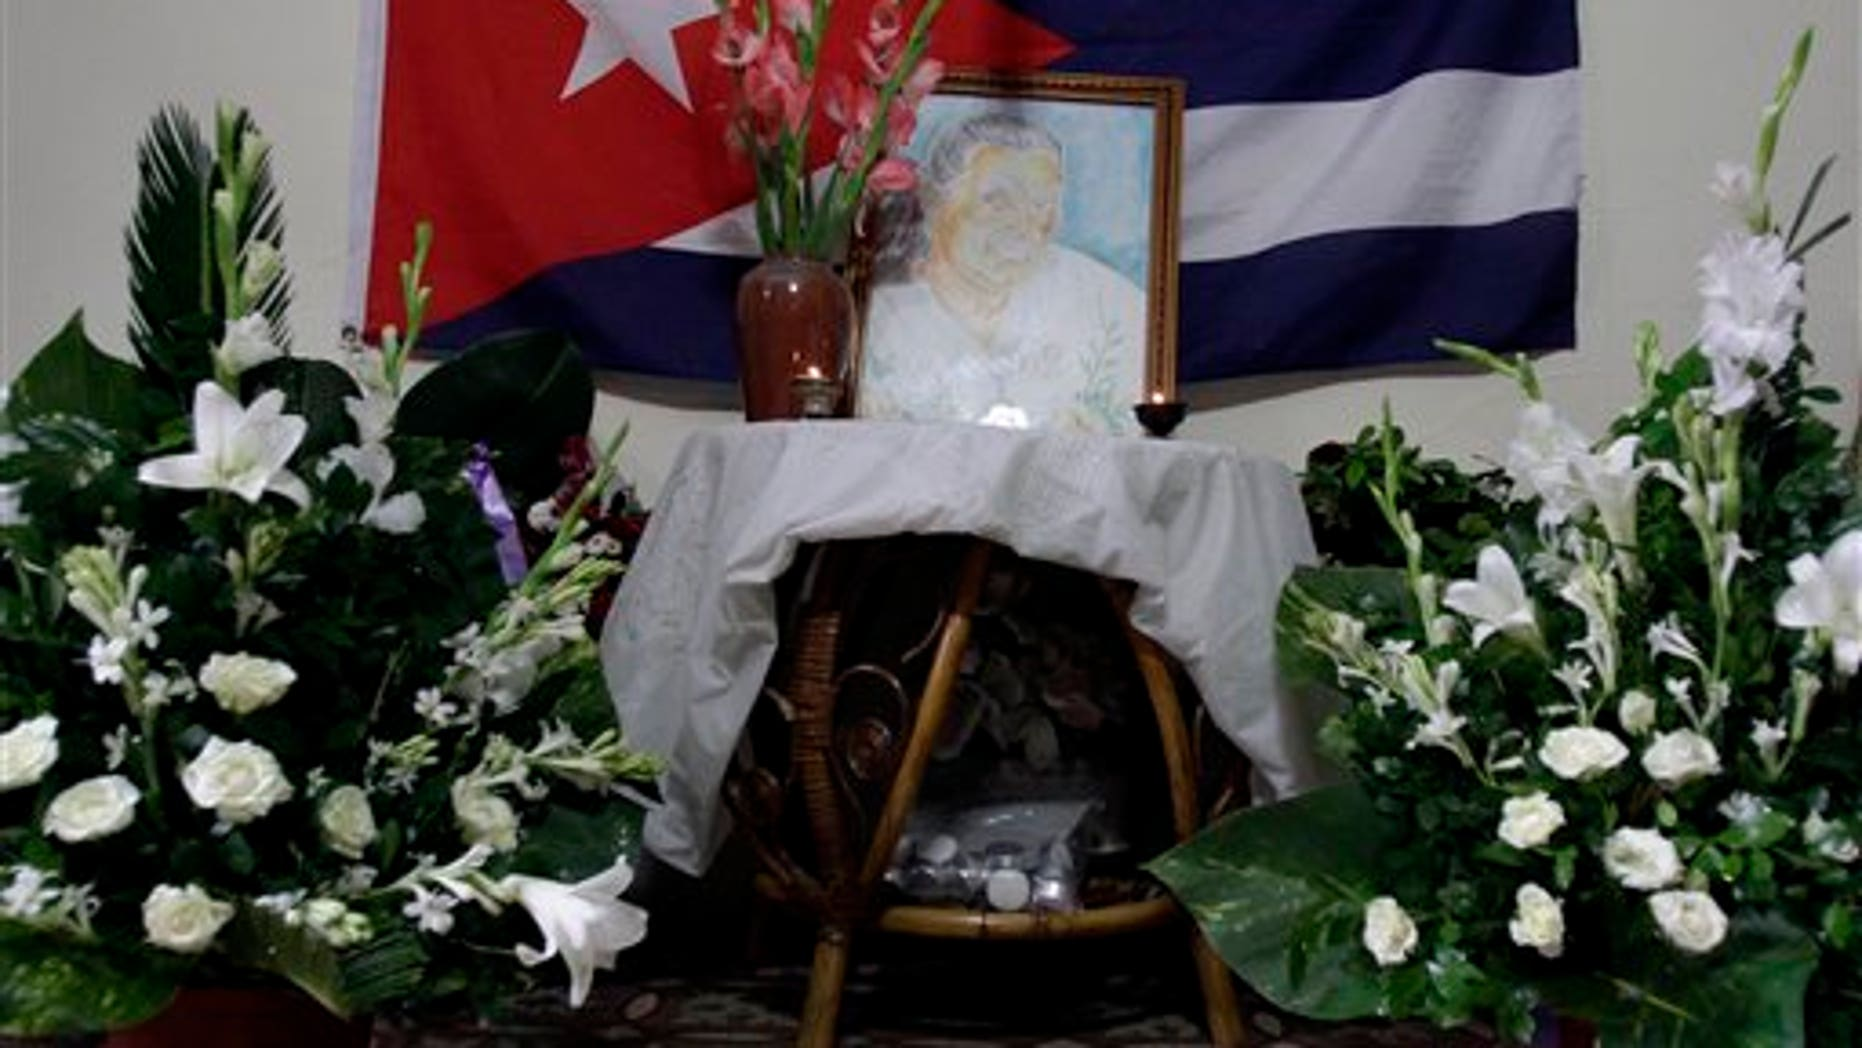 A painting of Laura Pollan, late leader of the dissident group Ladies in White, is flanked by flowers, candles and a Cuban flag during a gathering in her honor at her home in Havana, Cuba, Saturday Oct. 15, 2011.